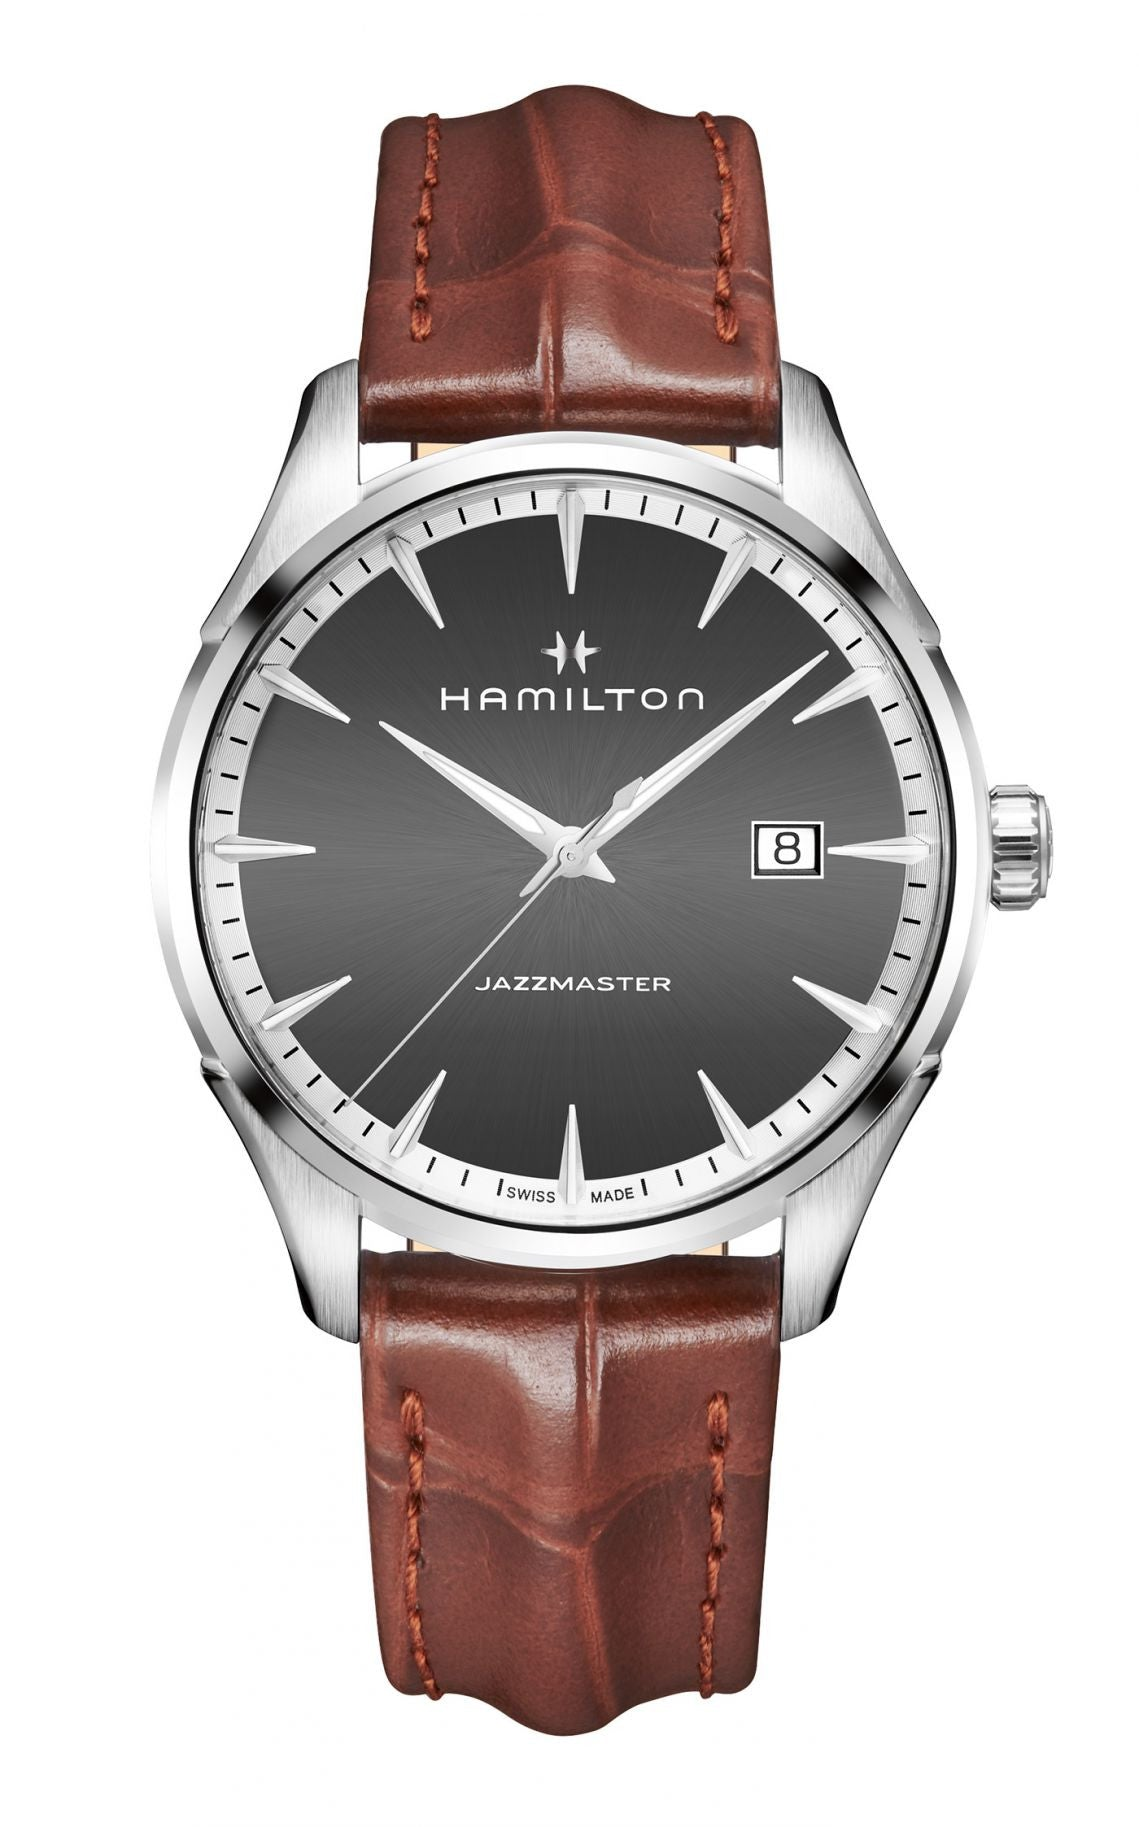 Hamilton Jazzmaster 40mm Quartz Watch